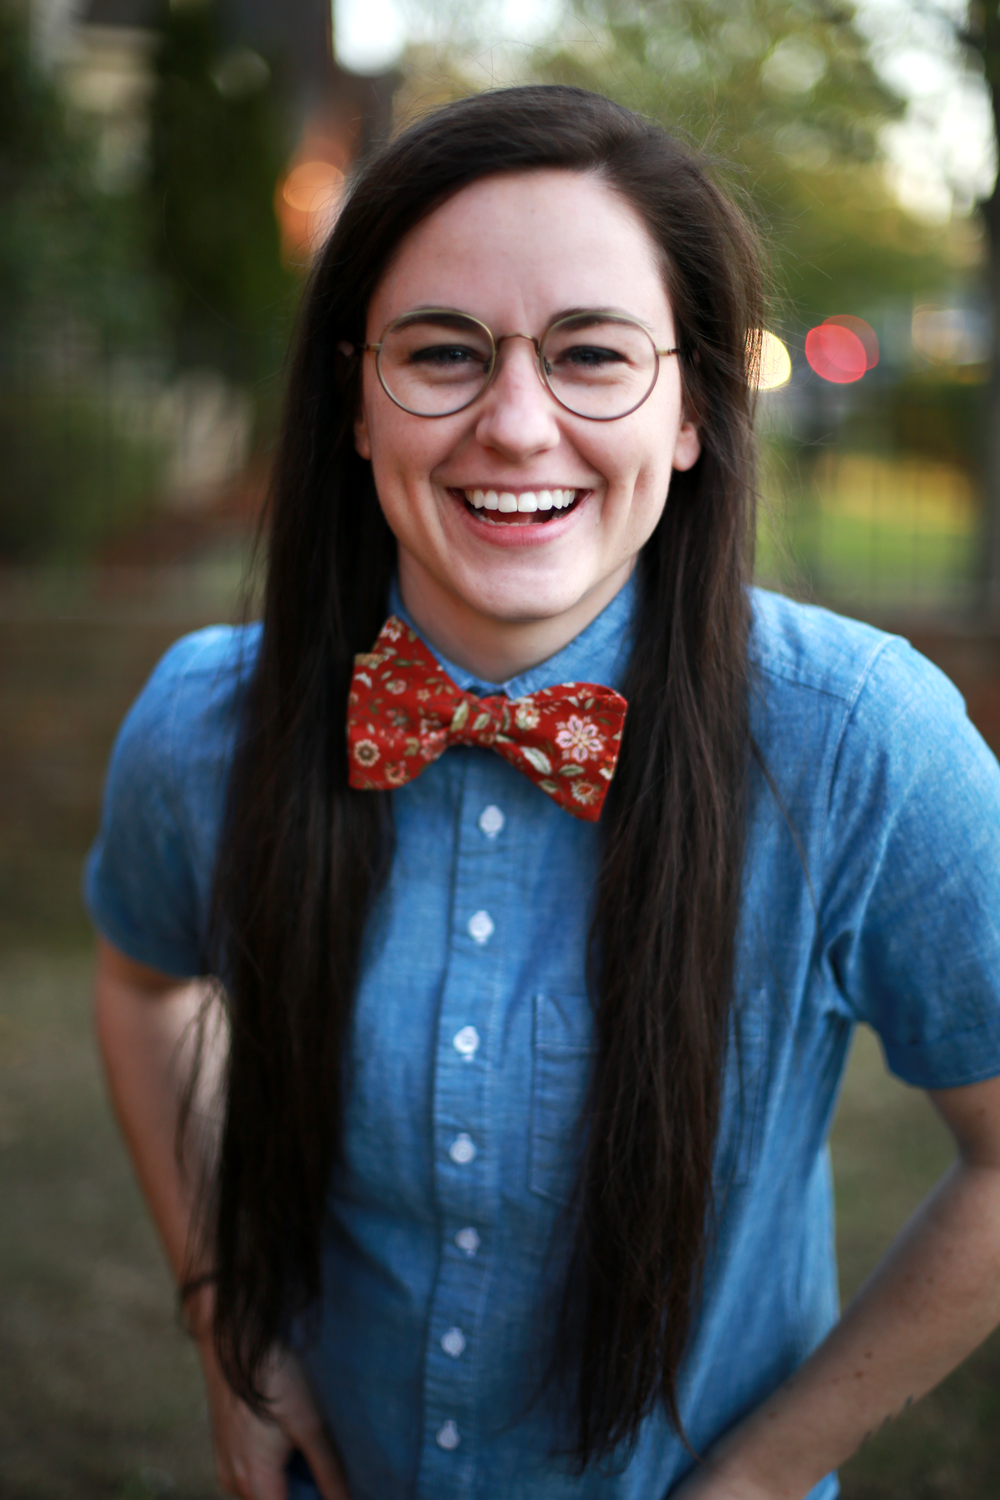 Katie Cooper, Founder, Photo by The Button Brigade